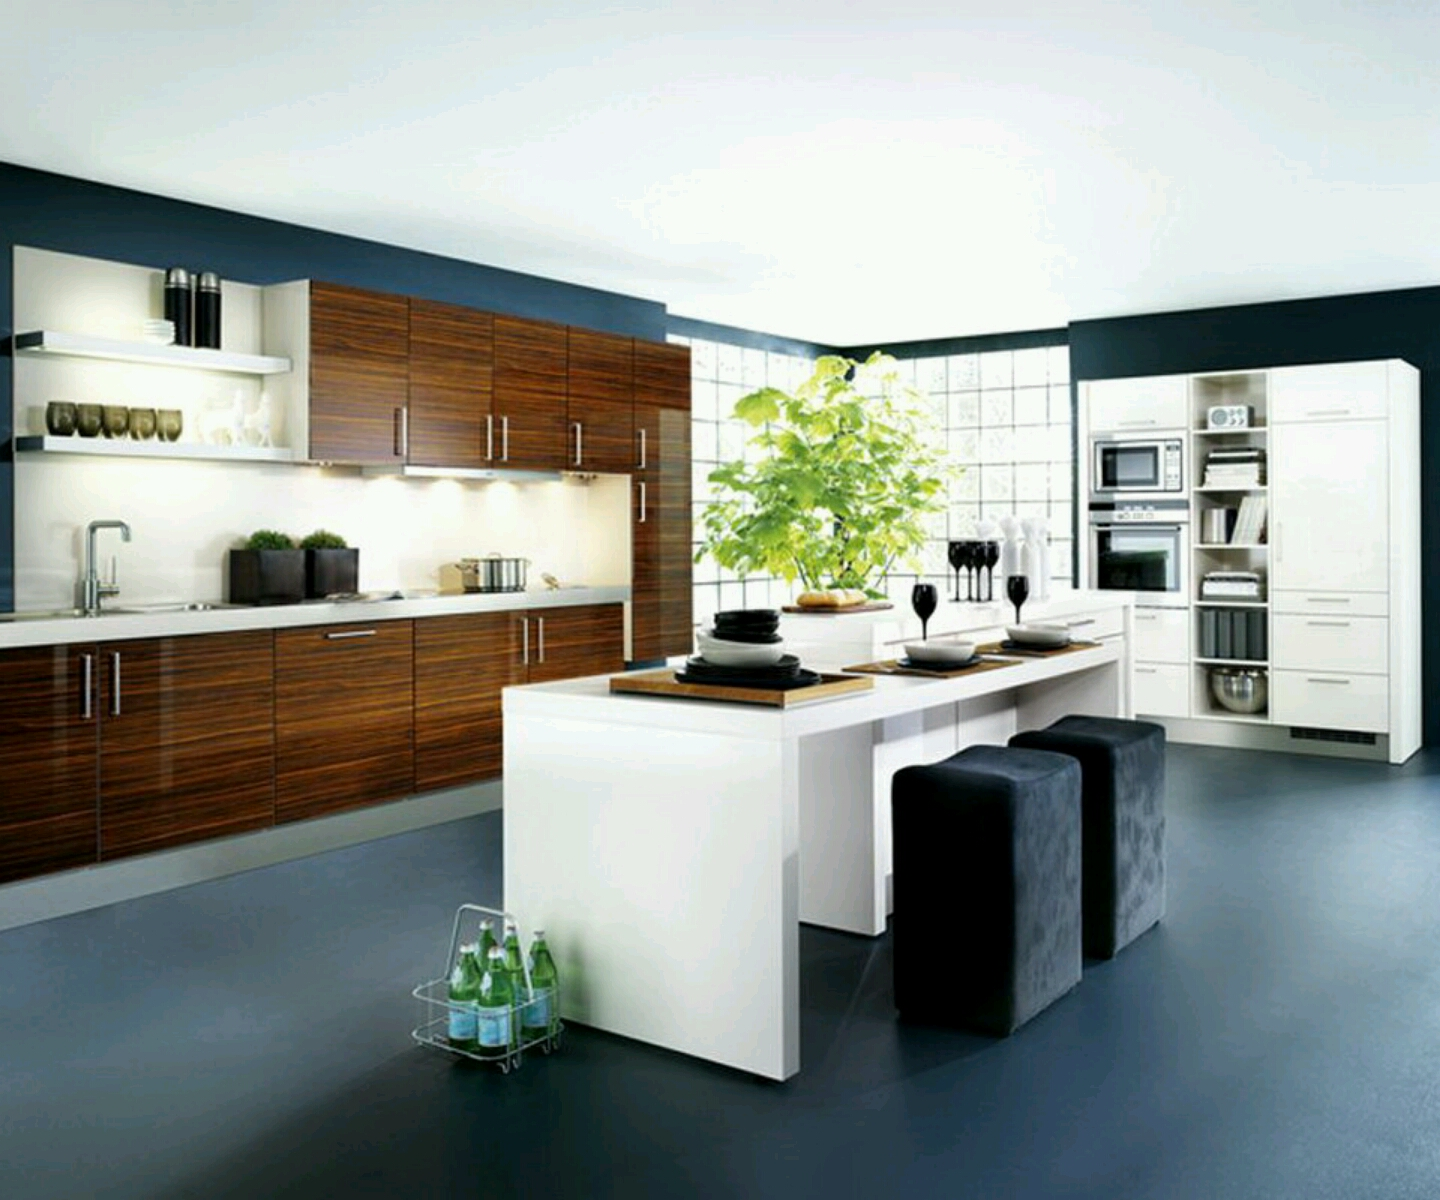 New home designs latest kitchen cabinets designs modern homes New contemporary kitchen design